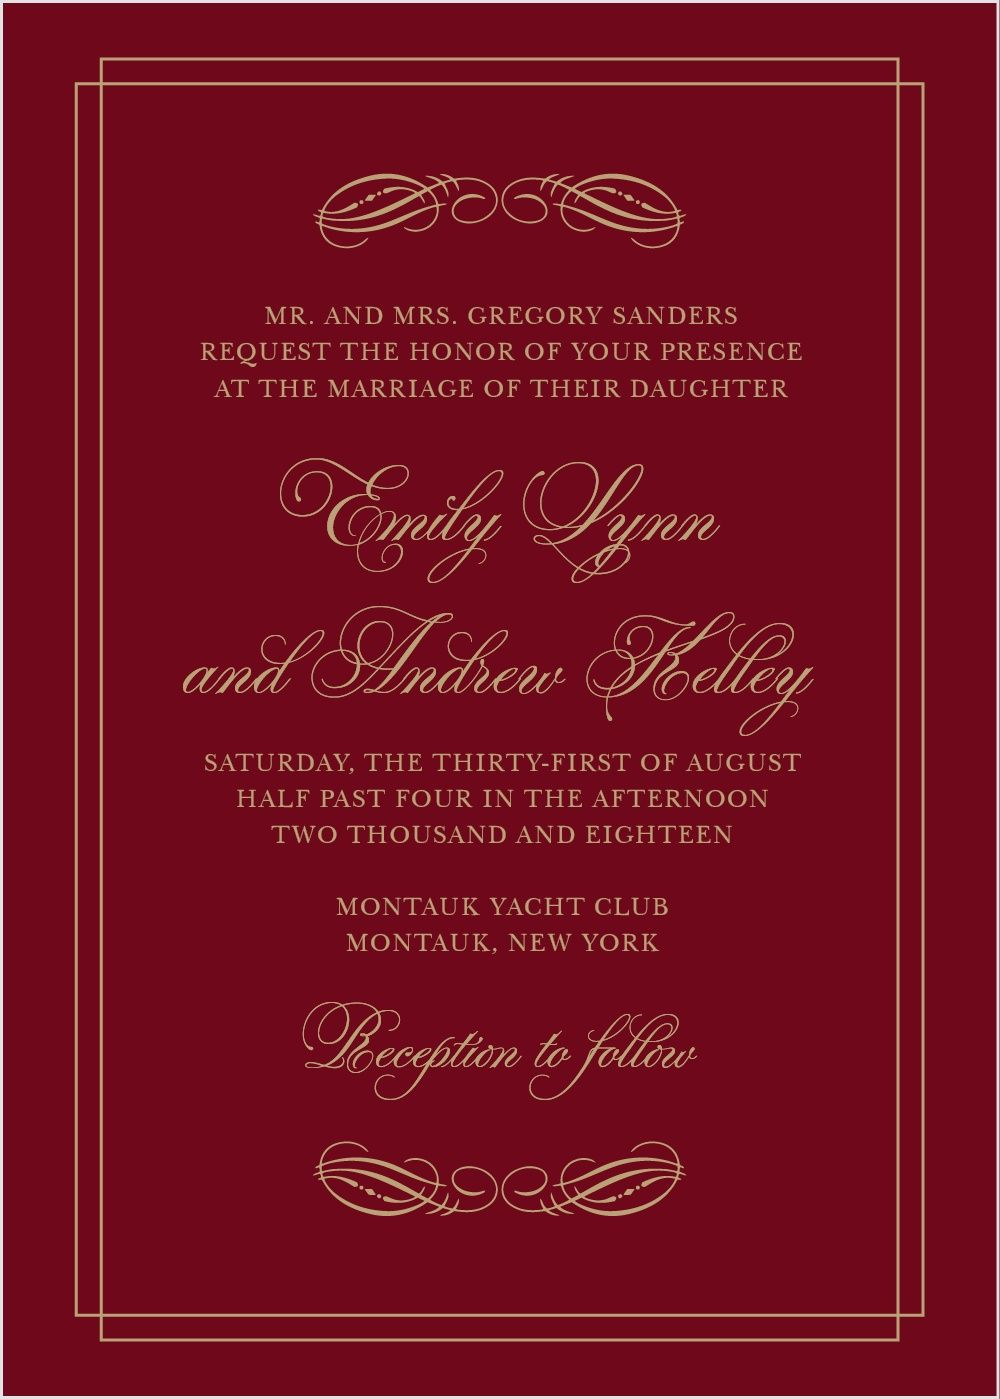 Emily Swash Wedding Invitations | Puccetti y\'all | Pinterest | Weddings